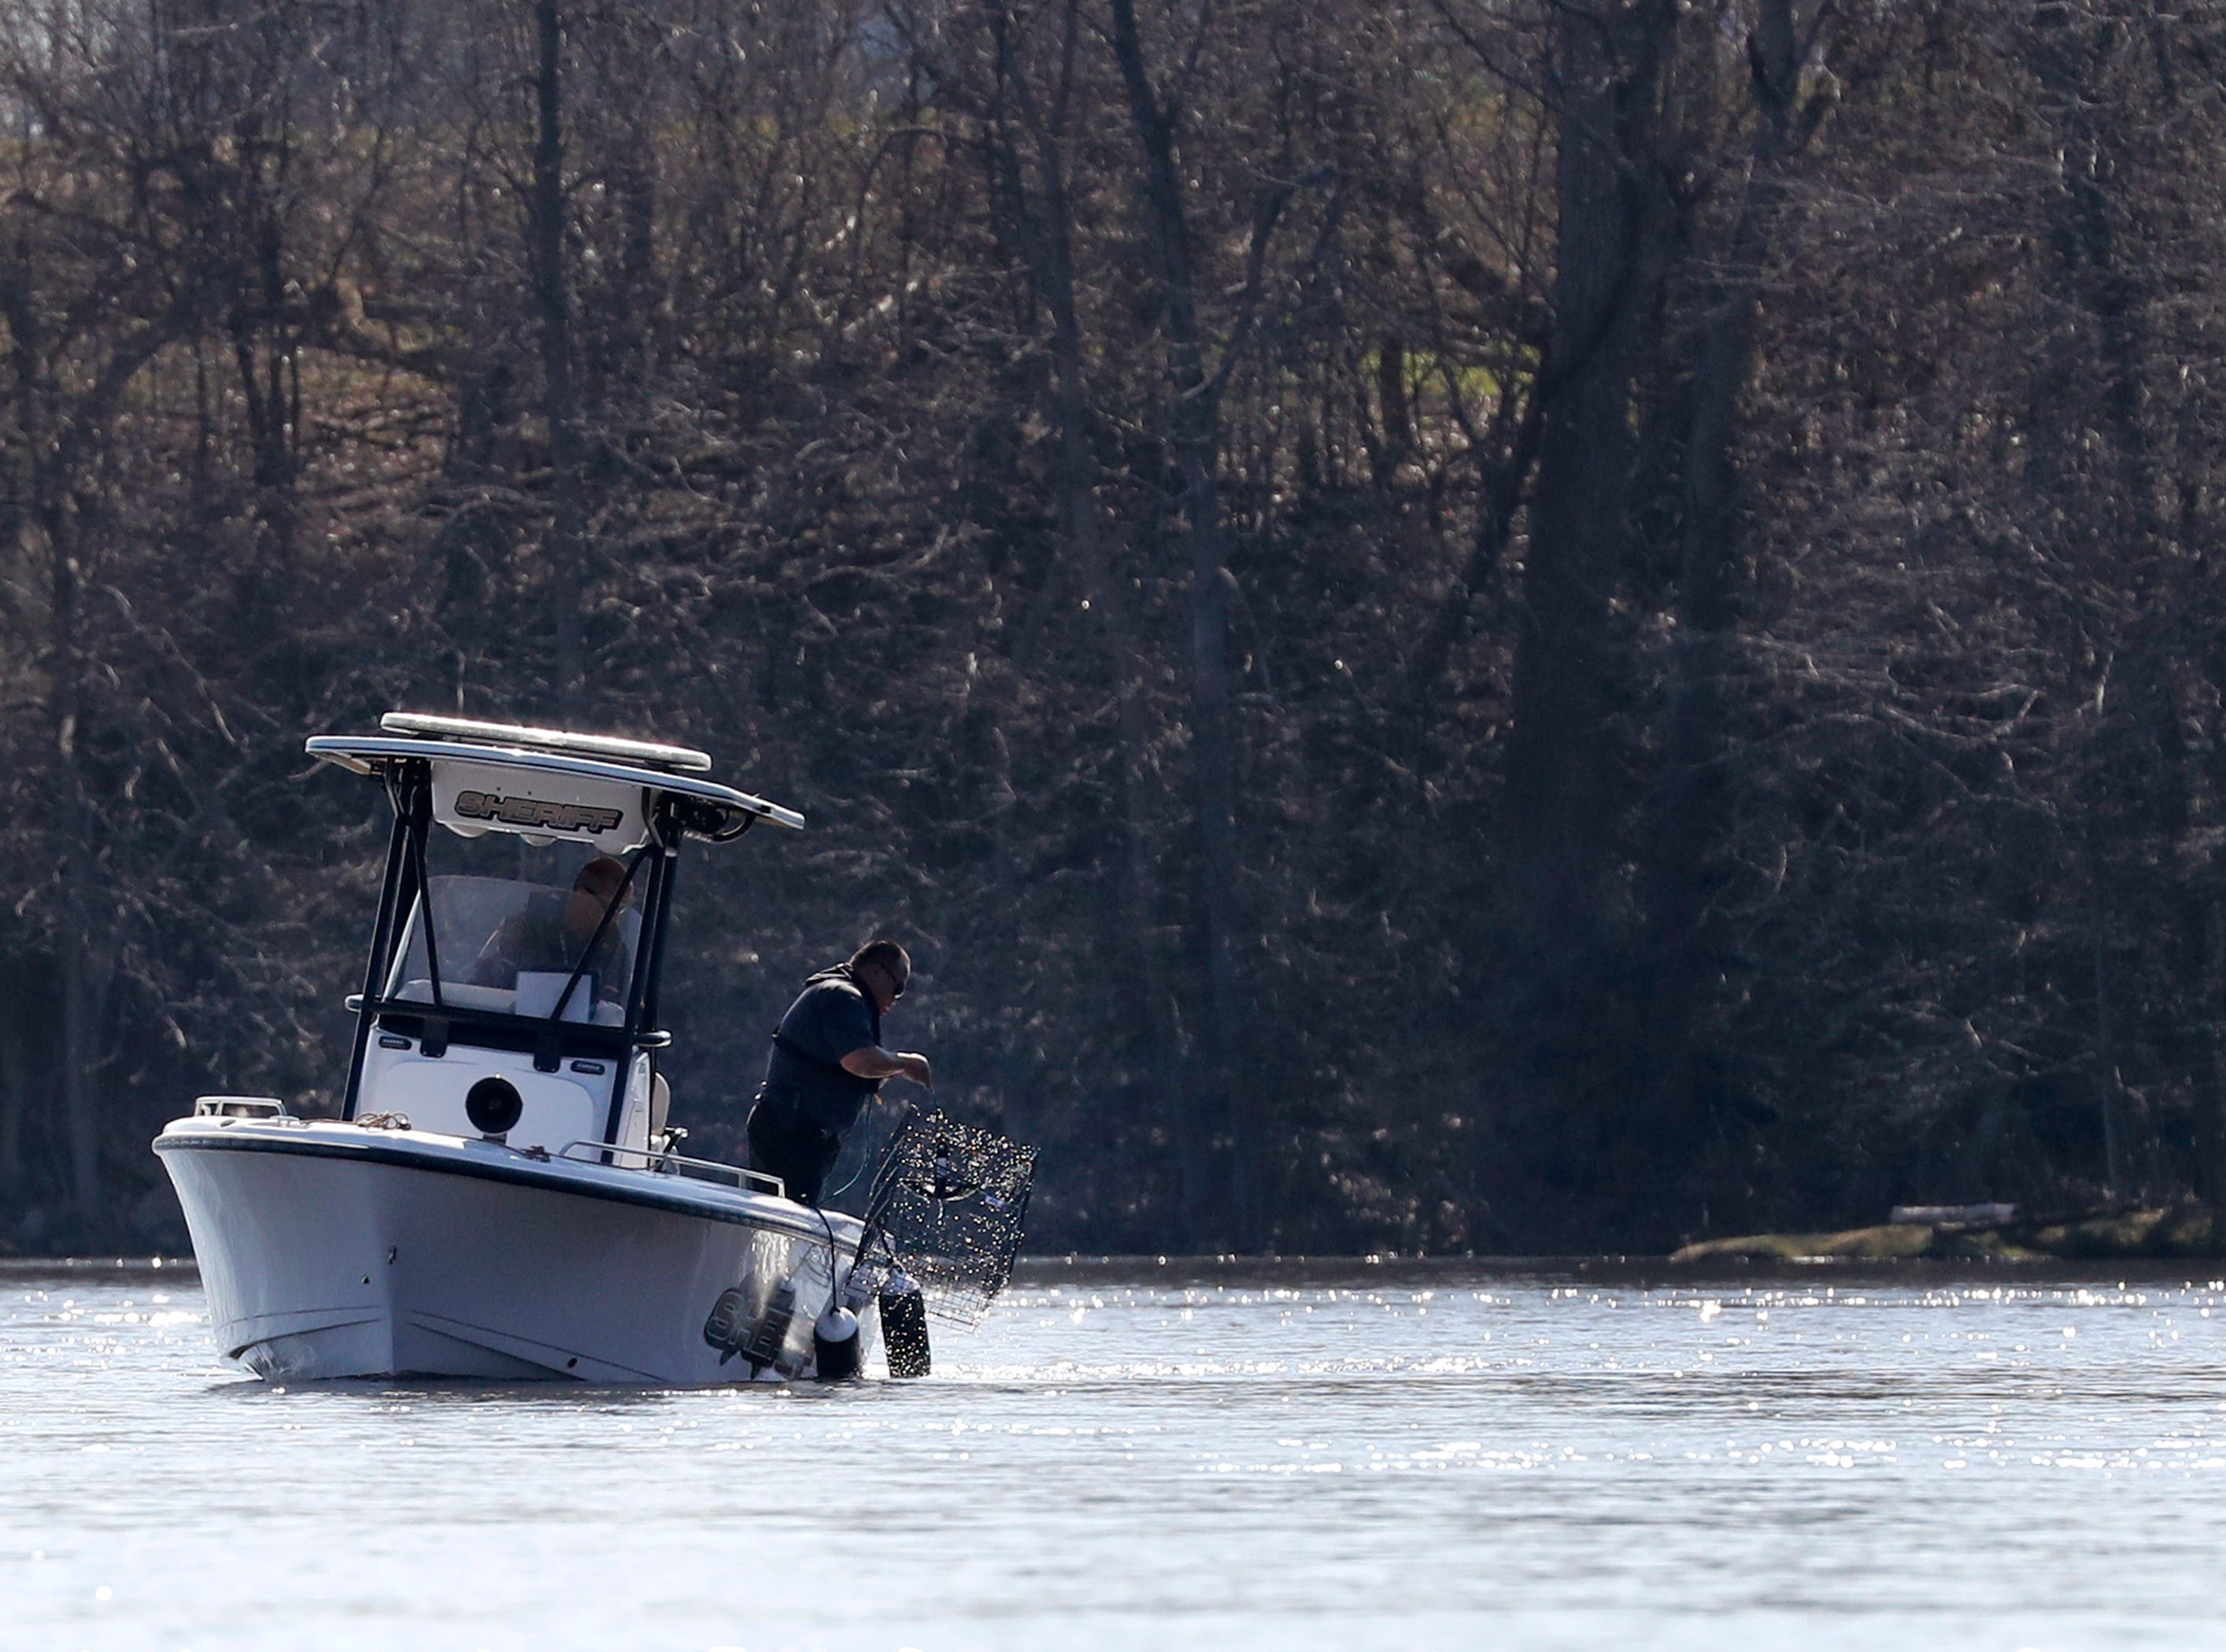 Sgt. Ker Yang, with the Outagamie County Sherif's Department, lifts a cage out of the water that was being used as a piece of training for boat sonar operations, search patterns and techniques Wednesday, April 24, 2019, on the Fox River in Kimberly, Wis. Sonar can be used in search and rescue operations as well as evidence recovery. The training involved agencies from Beaver Dam, Portage County, the Wisconsin DNR, Winnebago County, Wautoma, La Crosse and Anoka County, Minn.